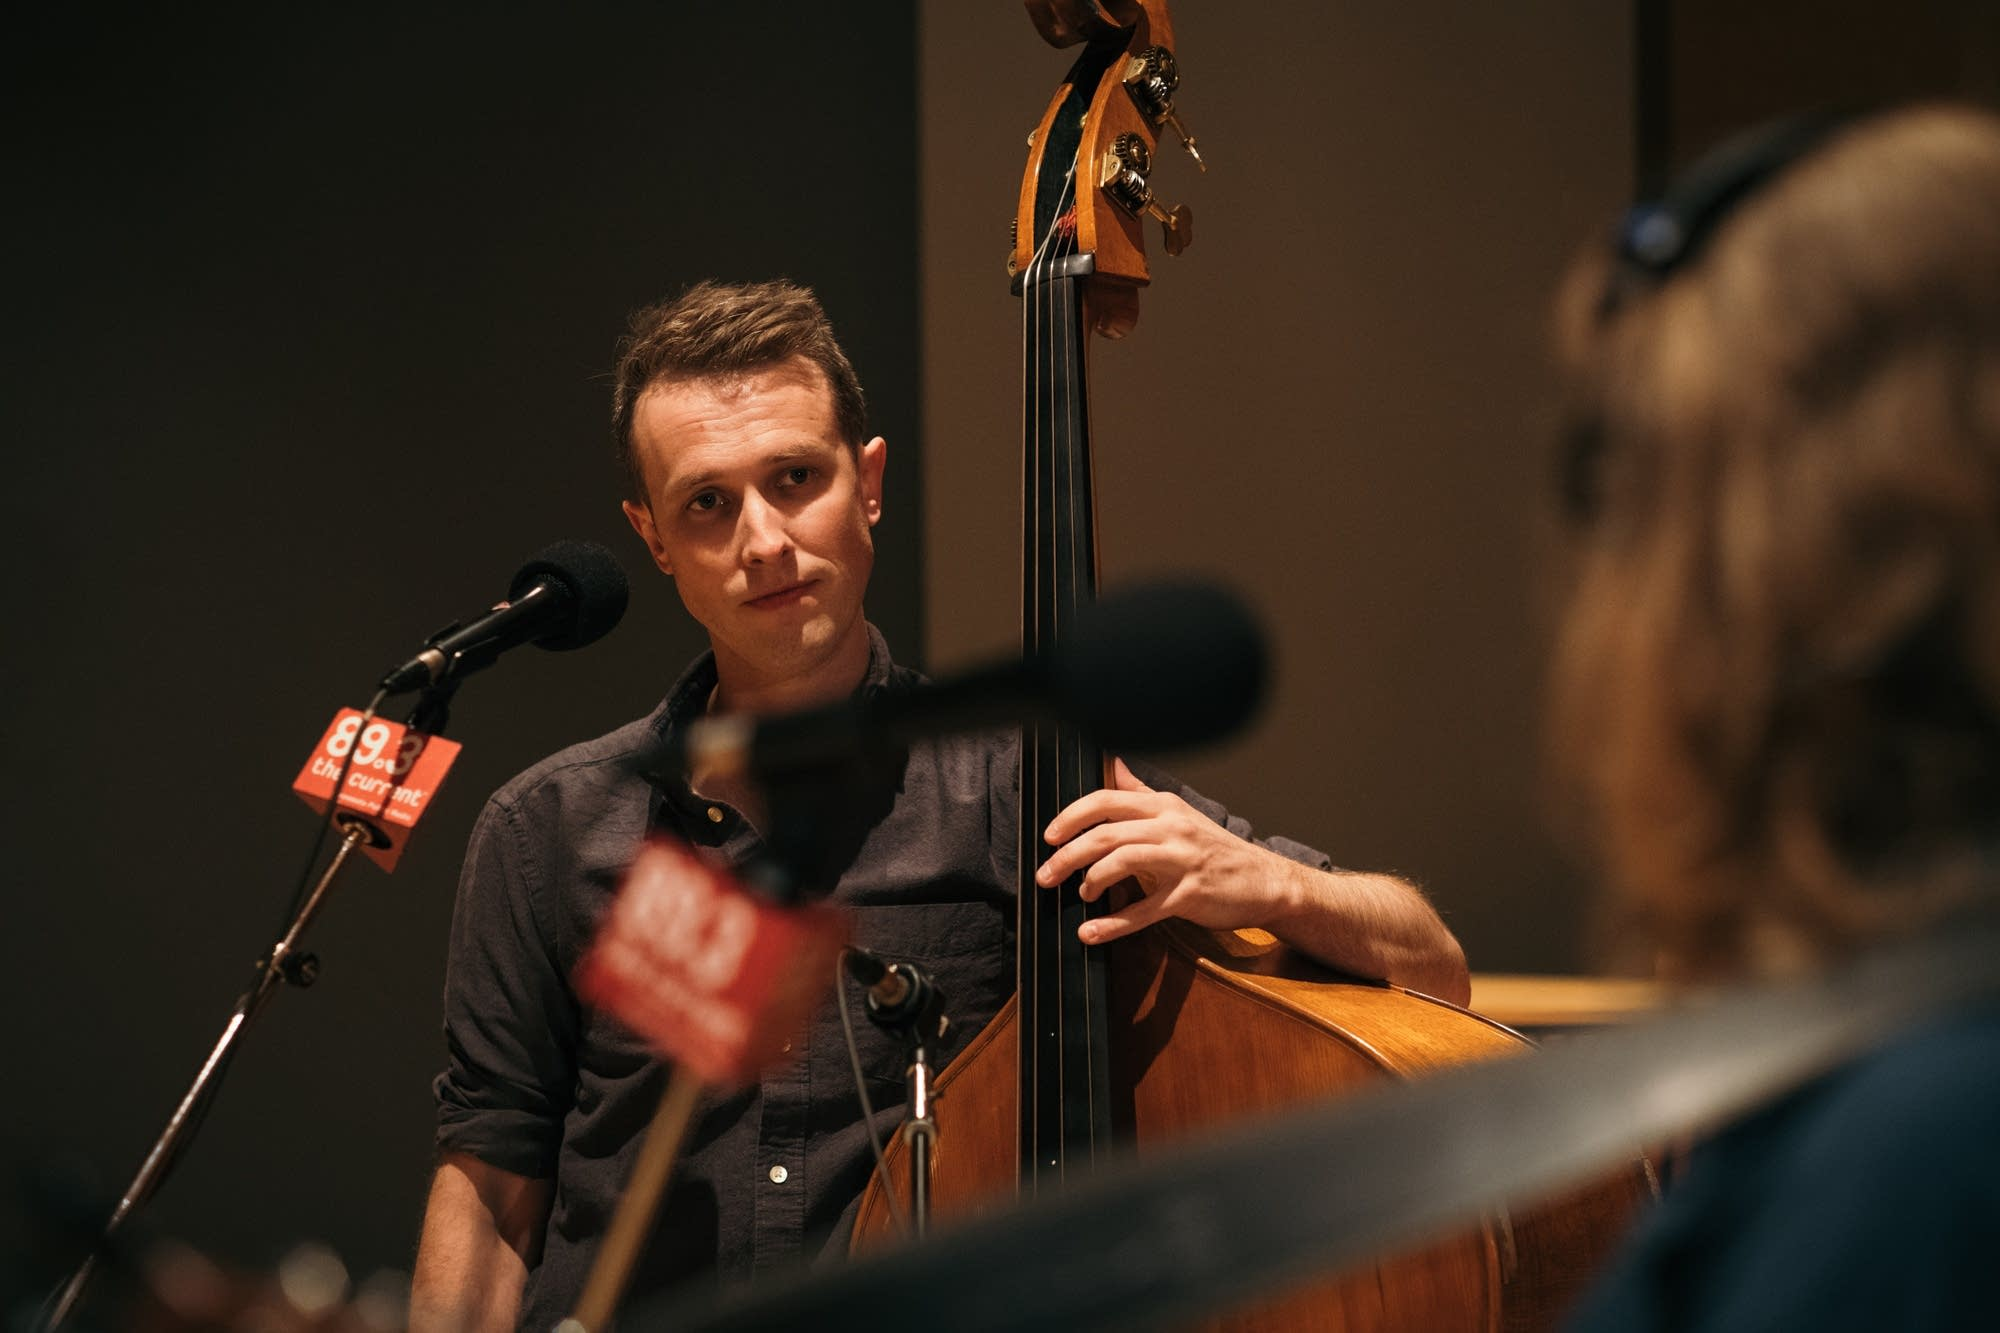 Dead Horses perform in the Radio Heartland studio